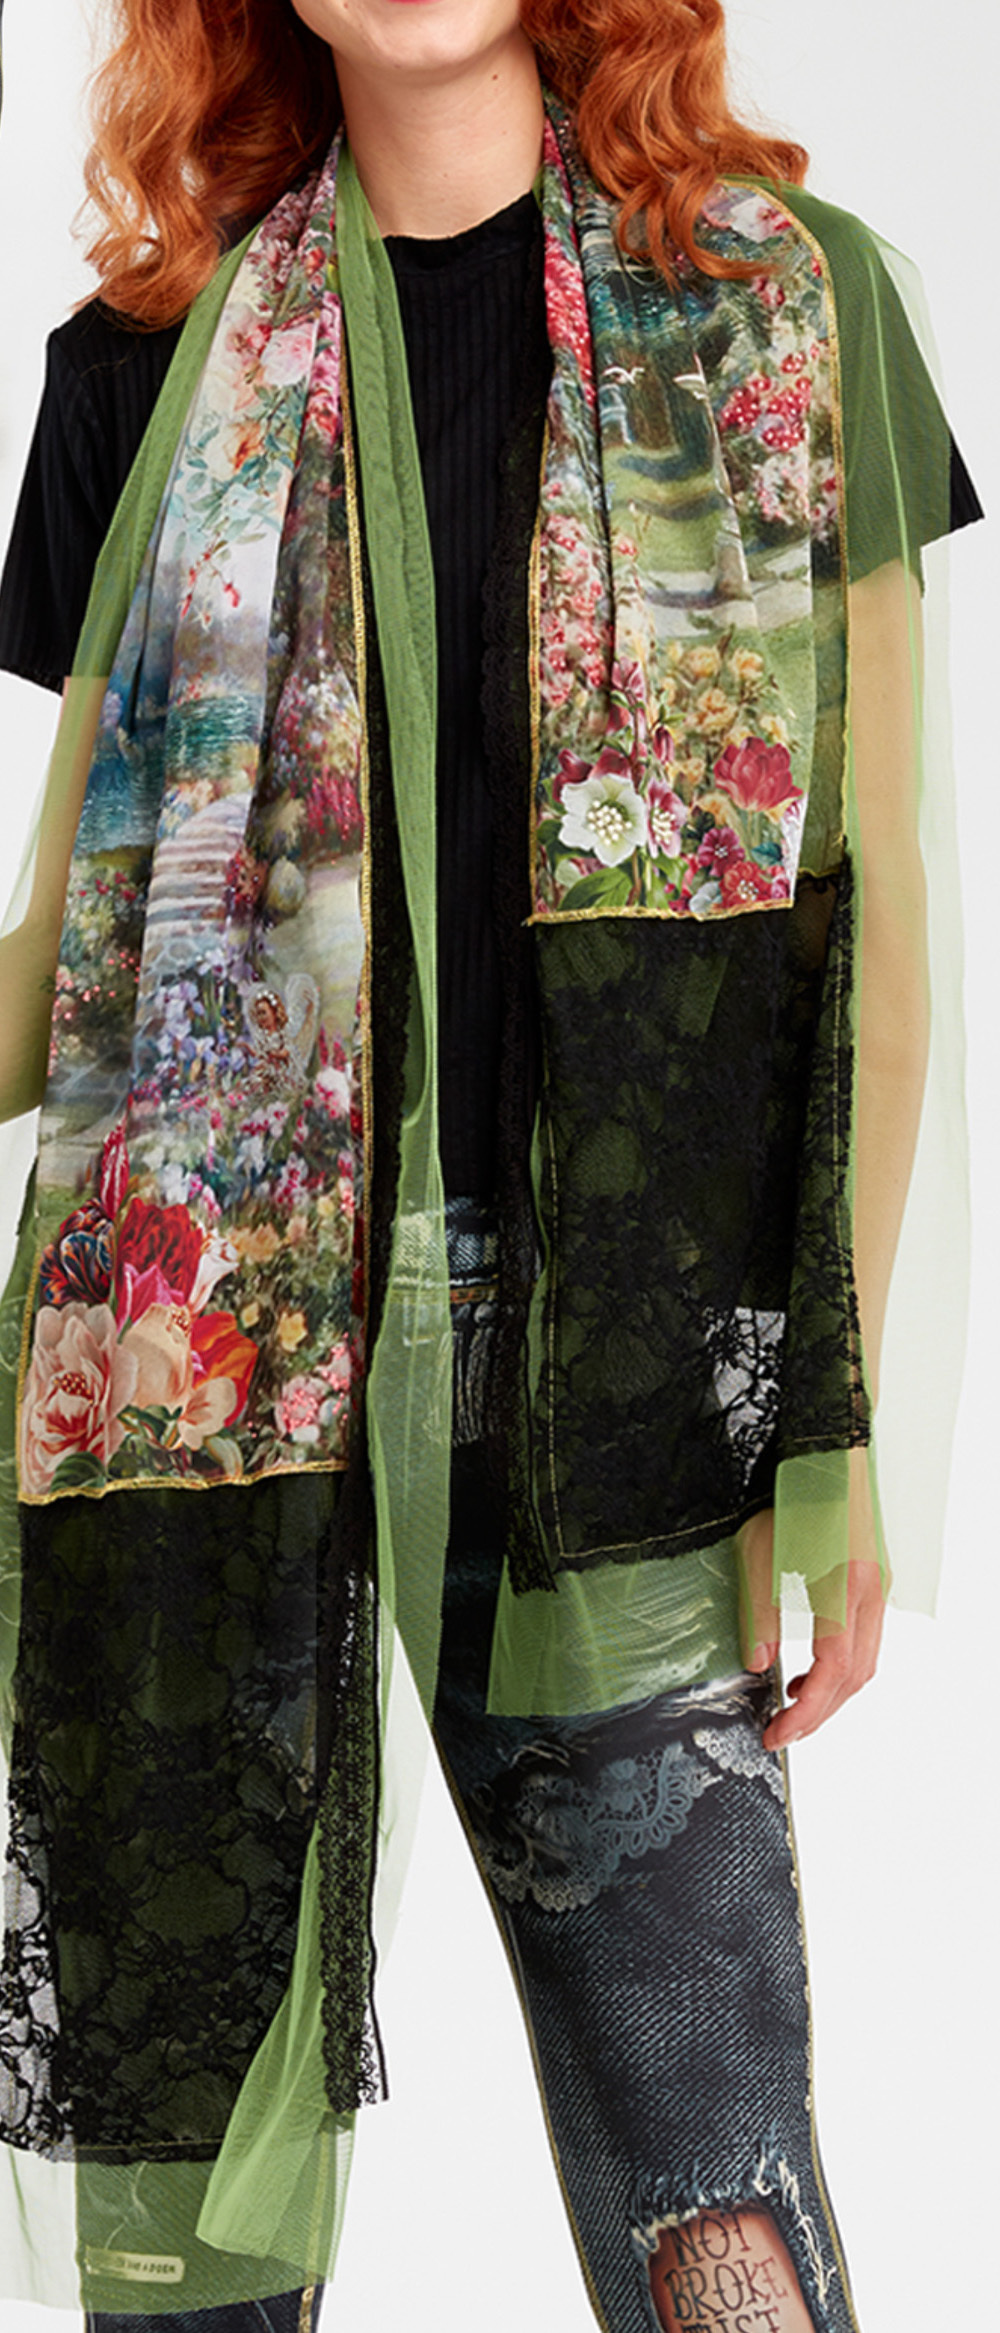 IPNG: In Paradiso Cherry Carnation Scarf (Ships Immed, 1 Left!)